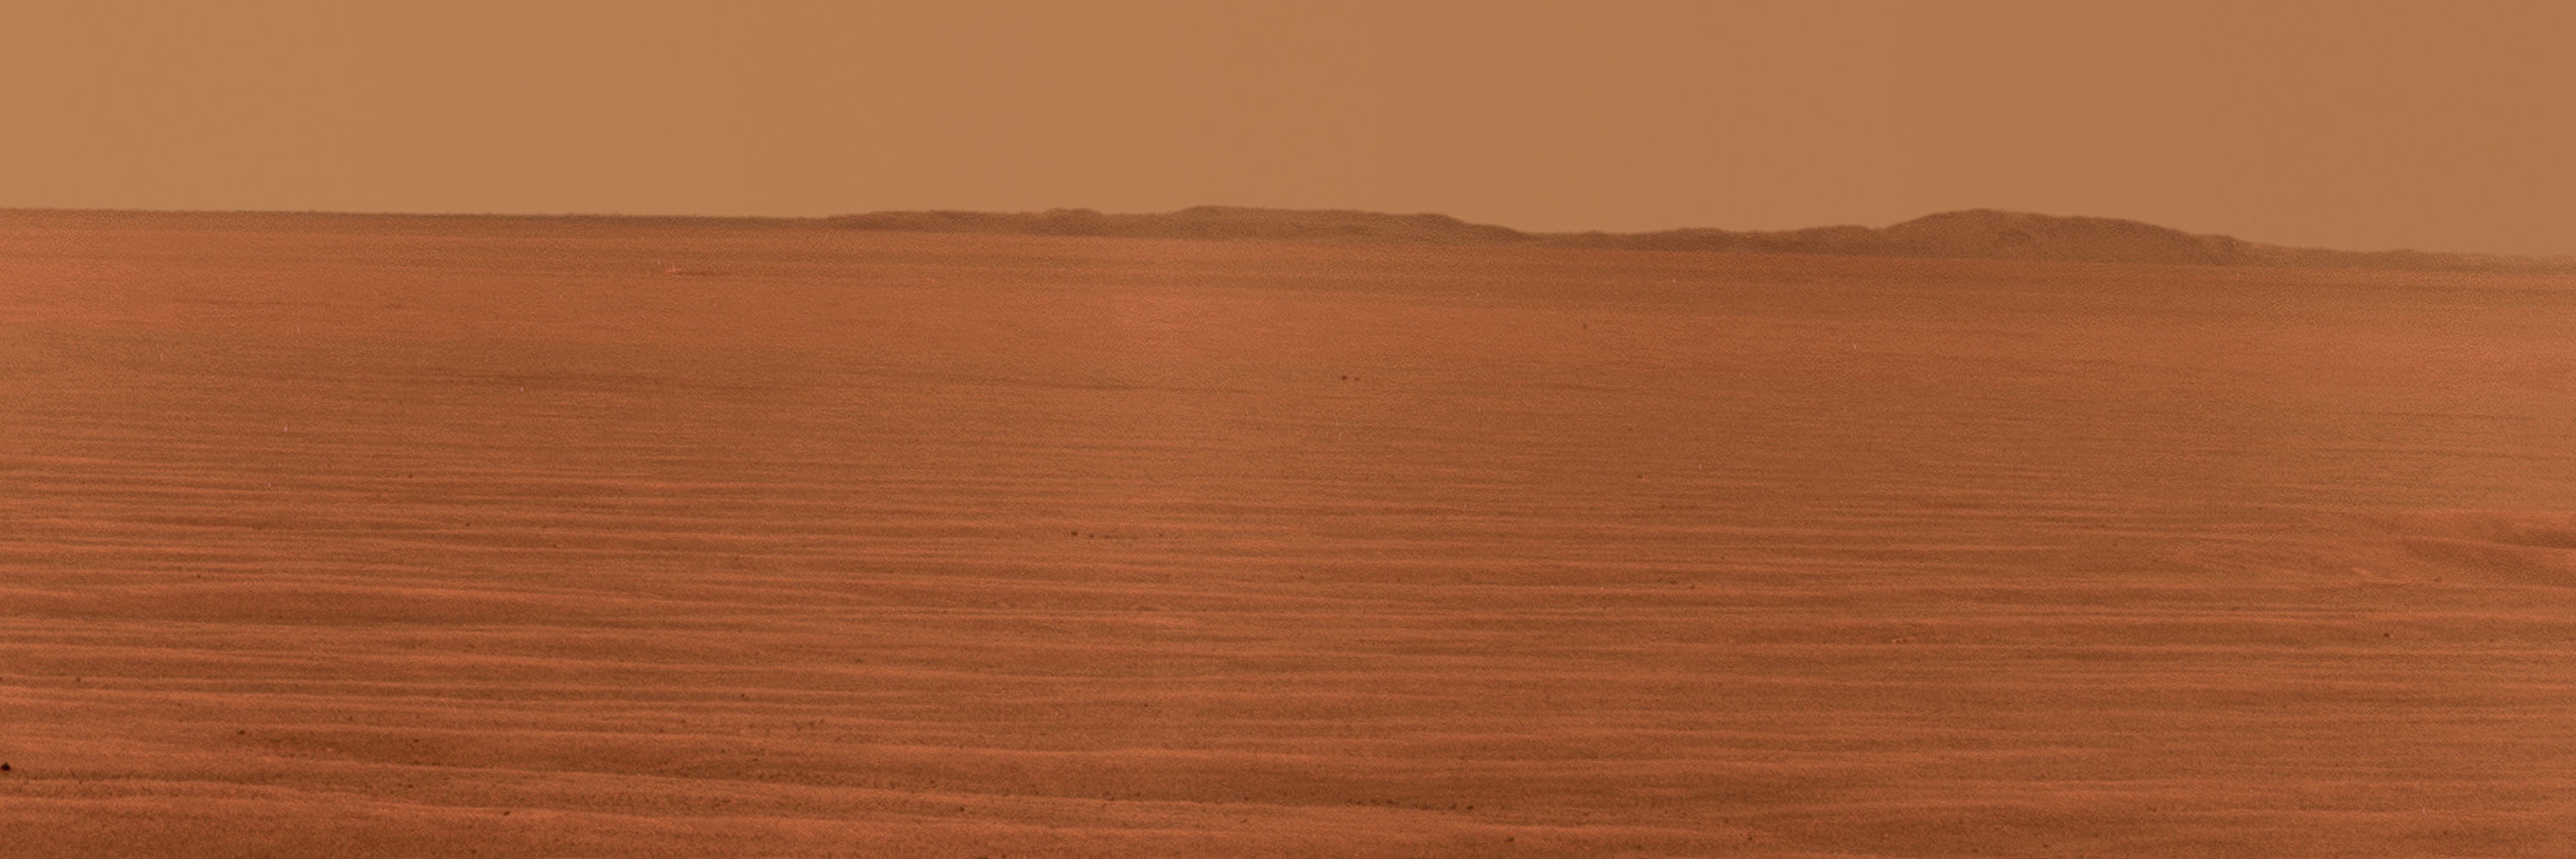 Opportunity used its panoramic camera to record this eastward horizon view on Oct. 31, 2010, its 2,407th Martian day, or sol, of the rover's work on Mars.